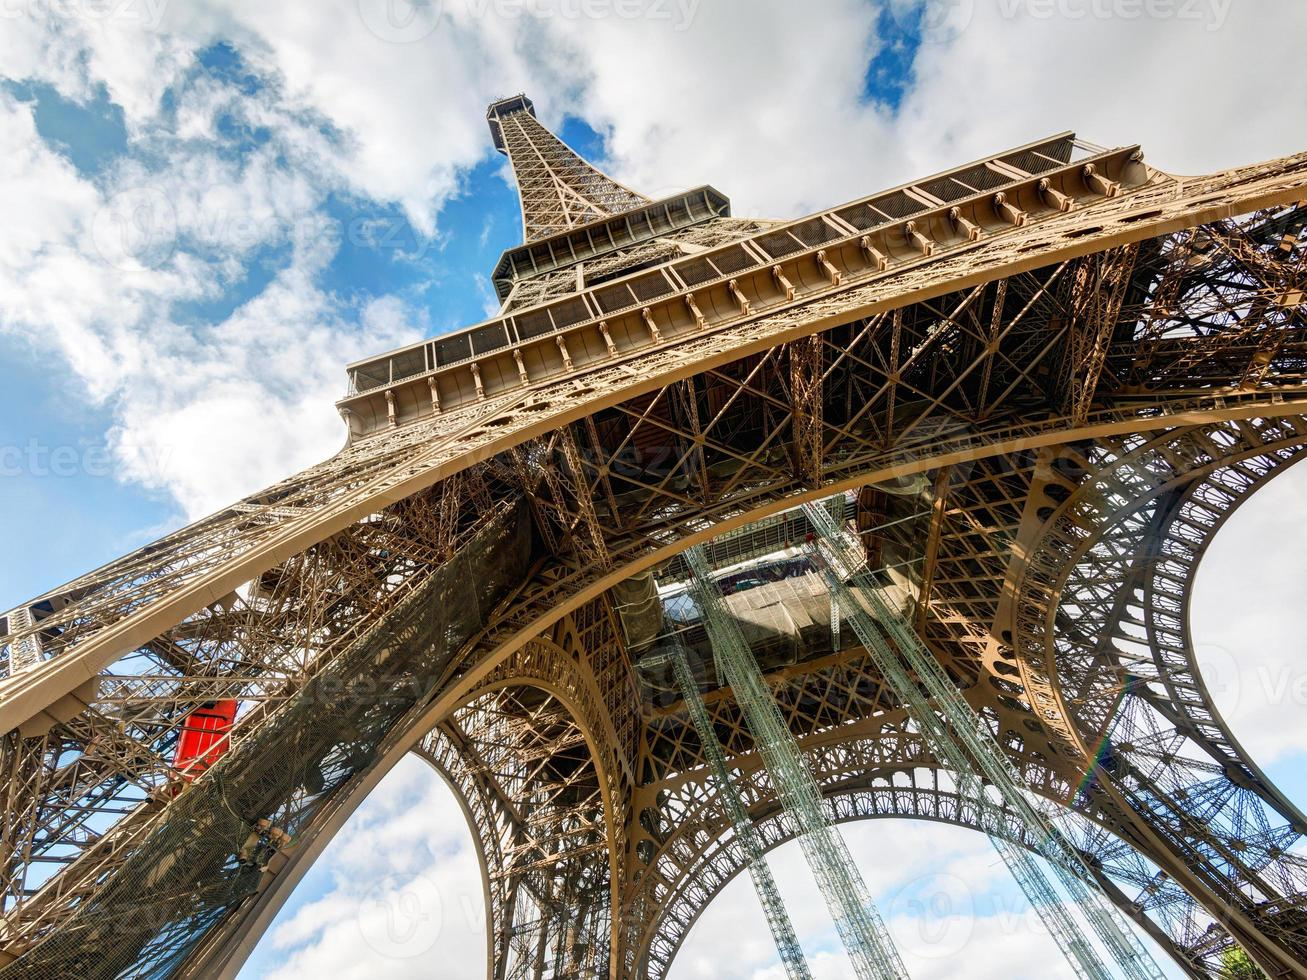 The Eiffel tower in Paris photo